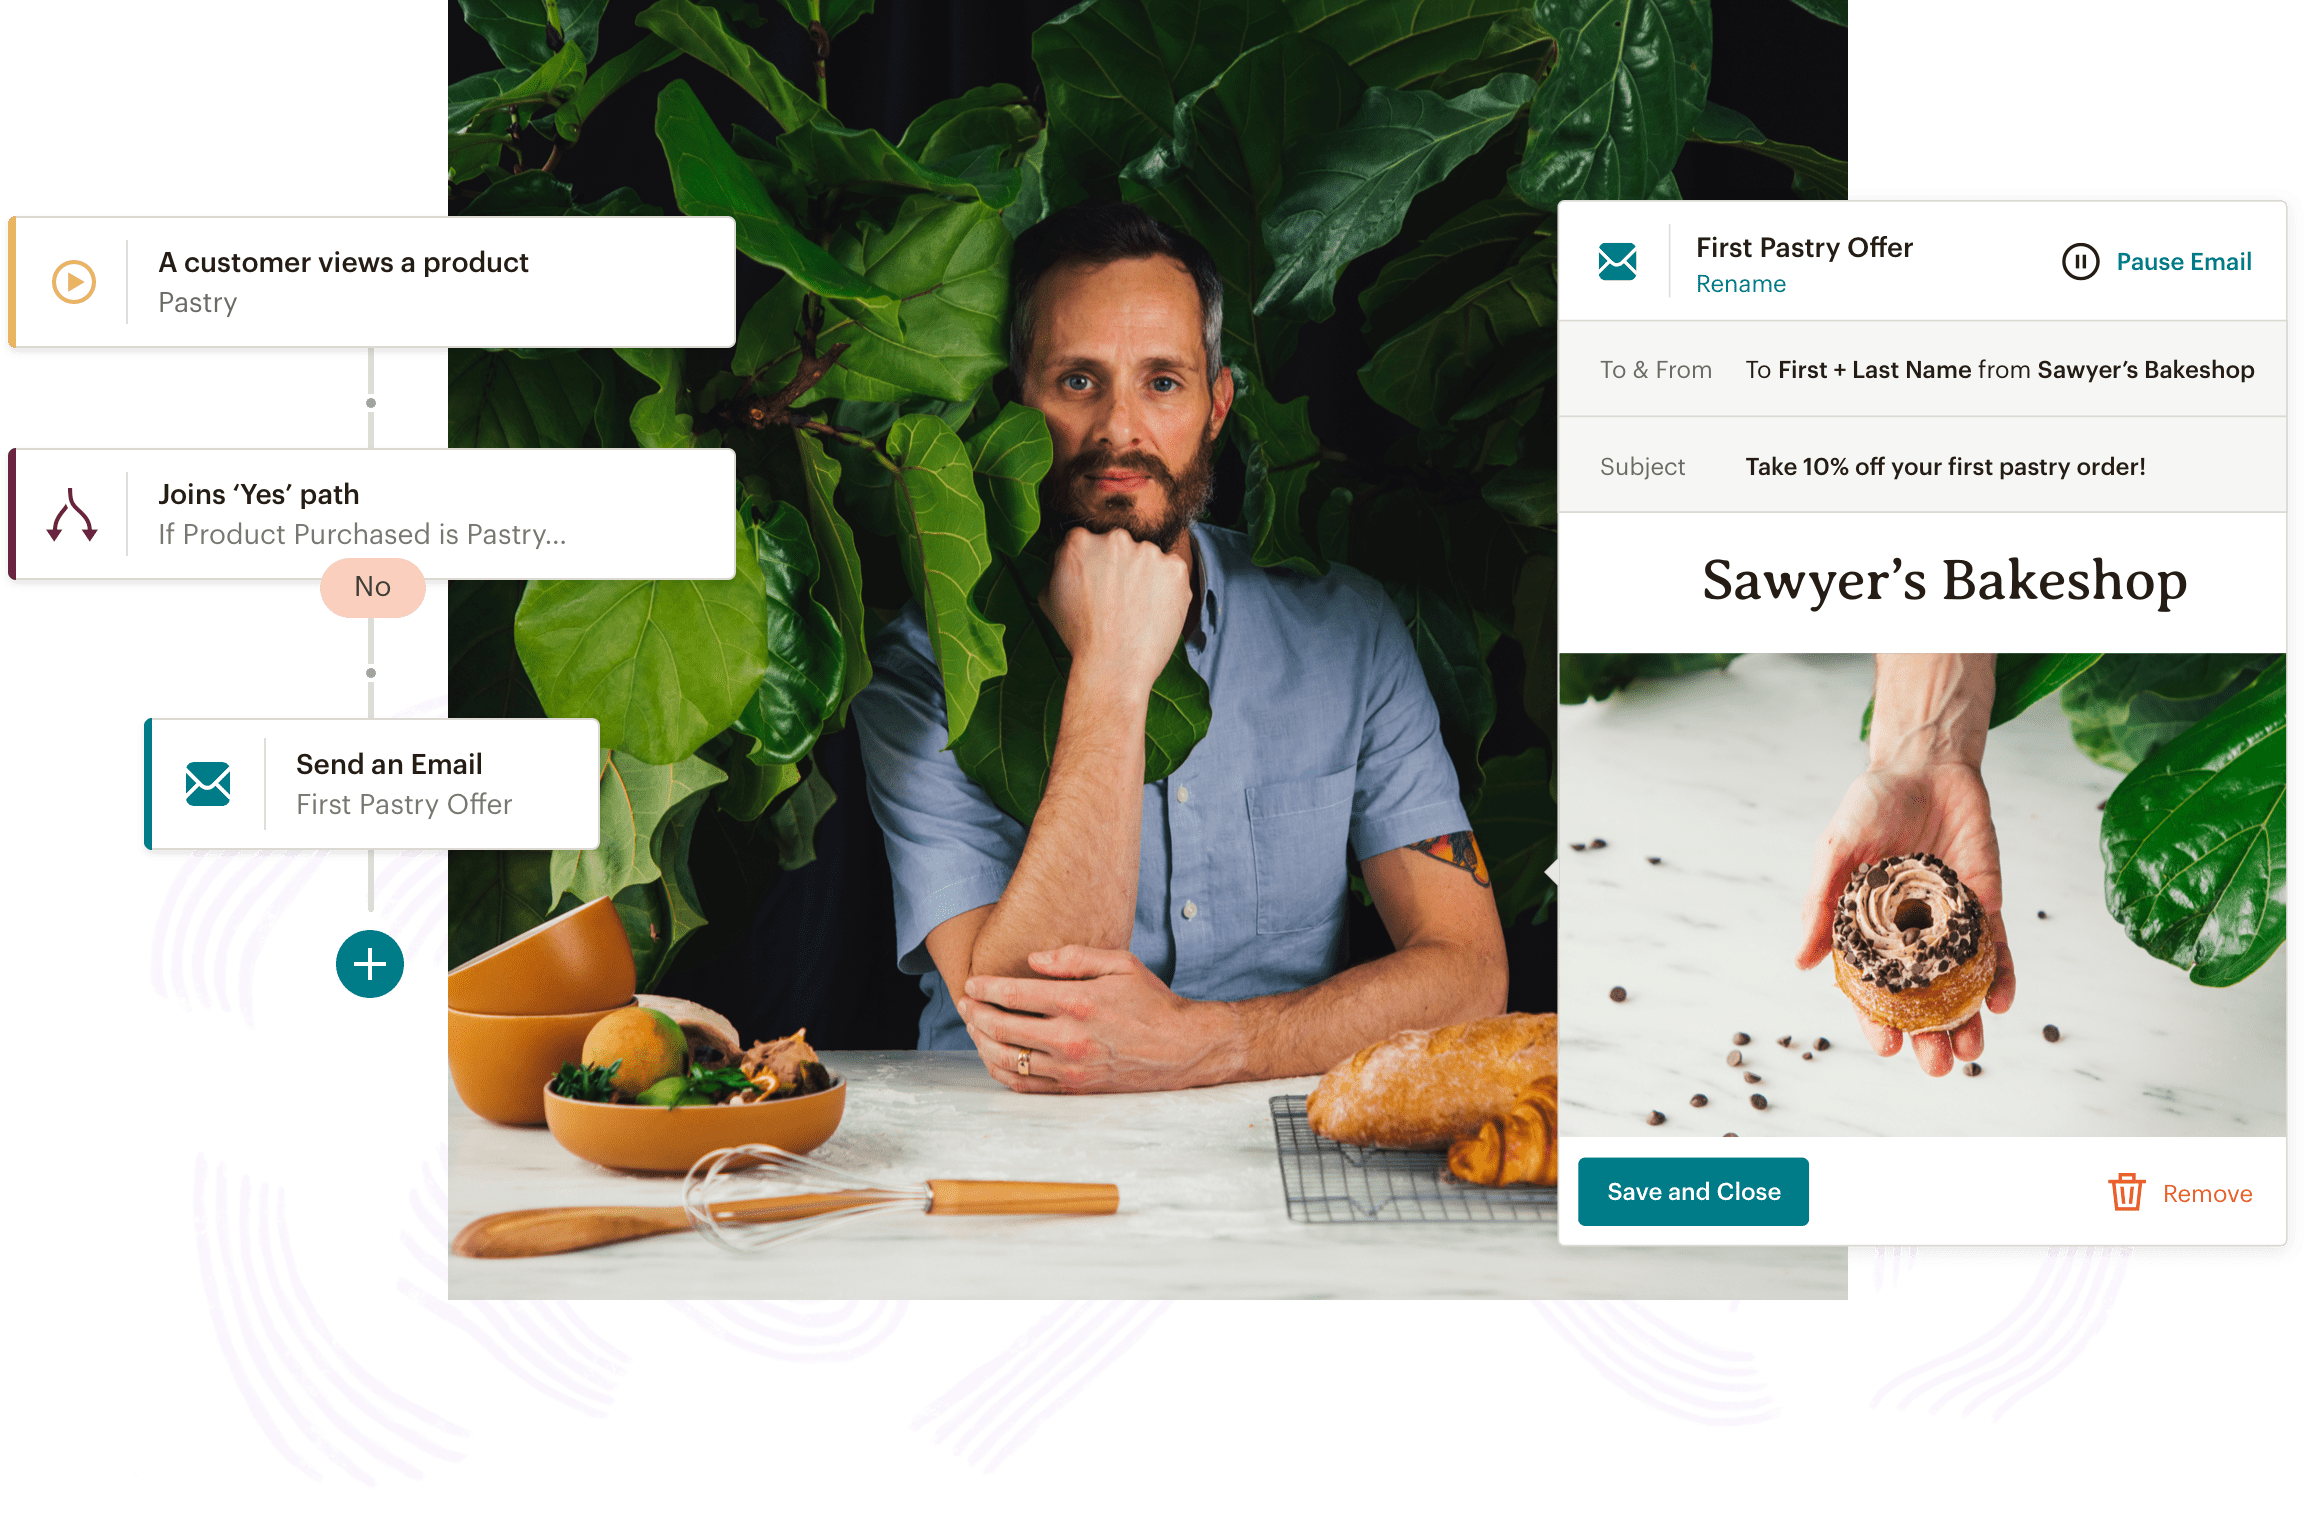 An example of Mailchimp's Customer Journey Builder and Email tools